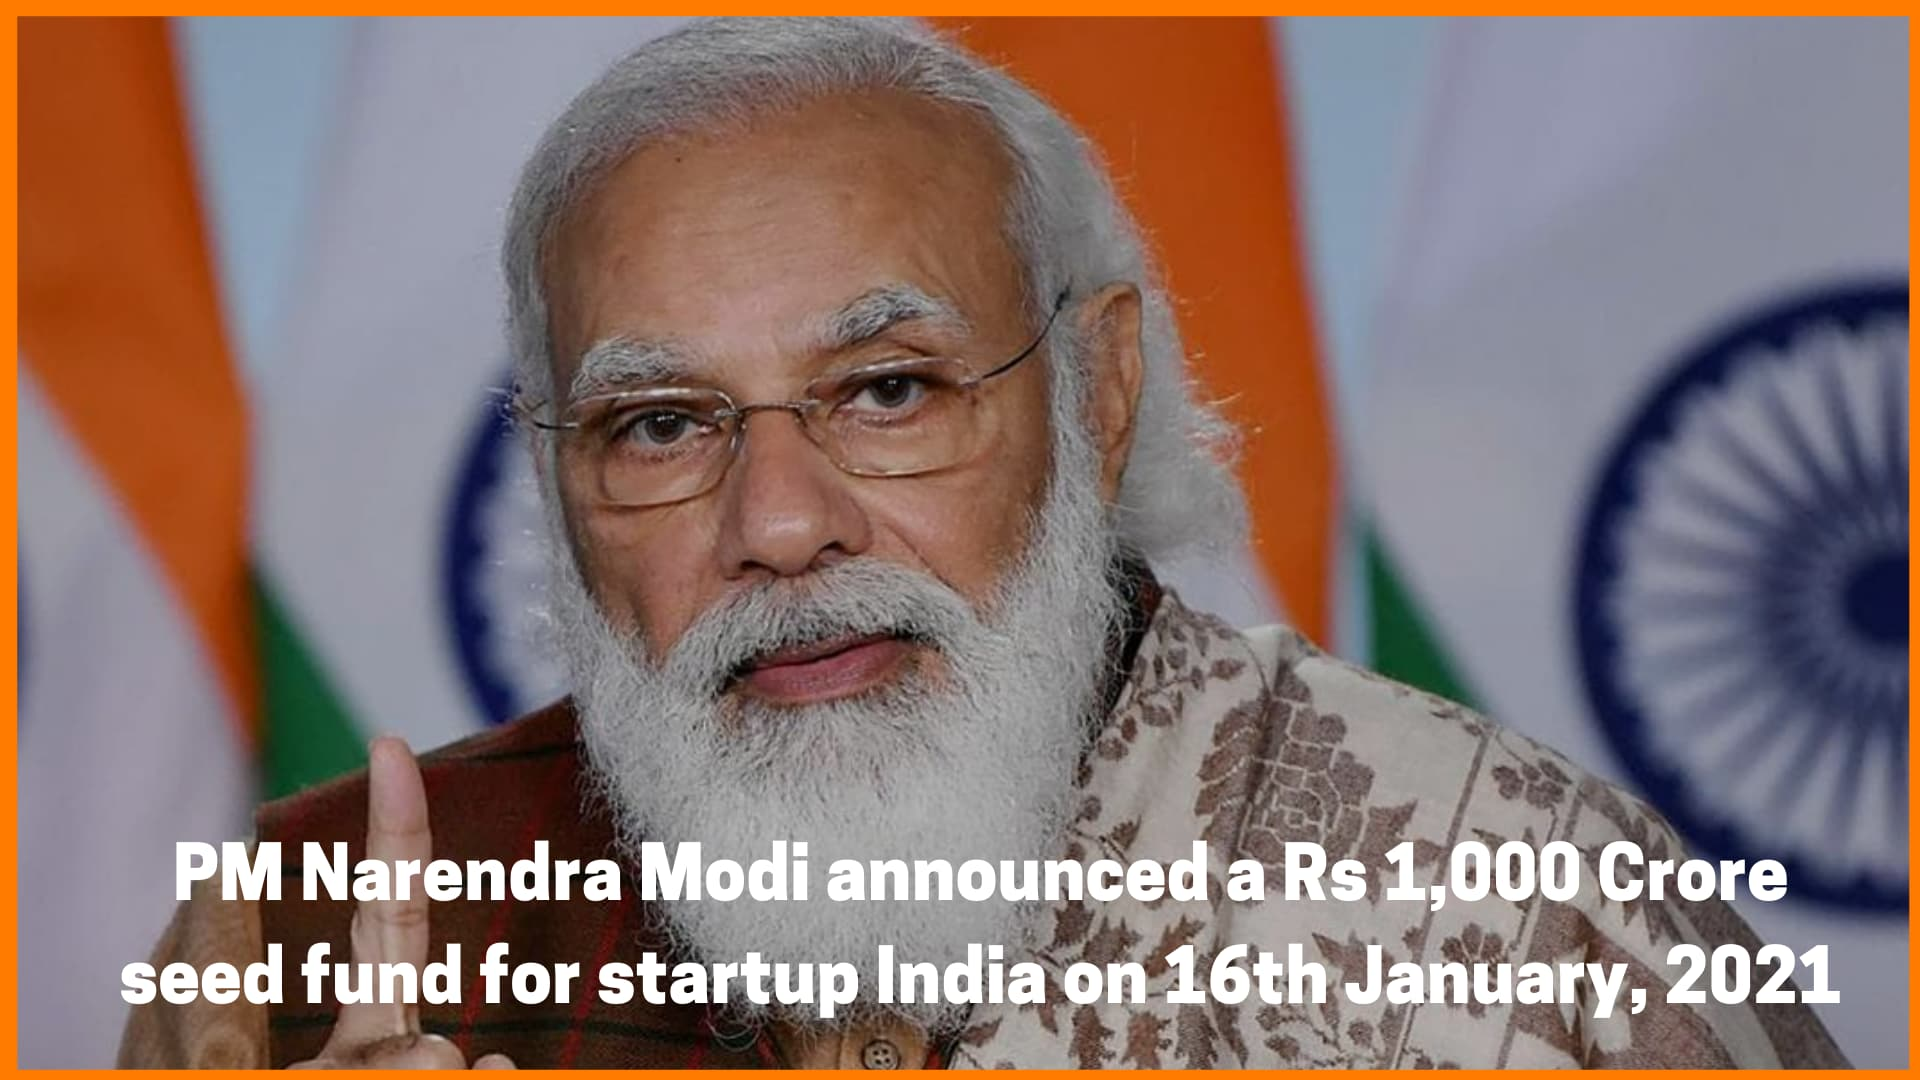 PM Modi announced the Startup fund on 16th January, 2021